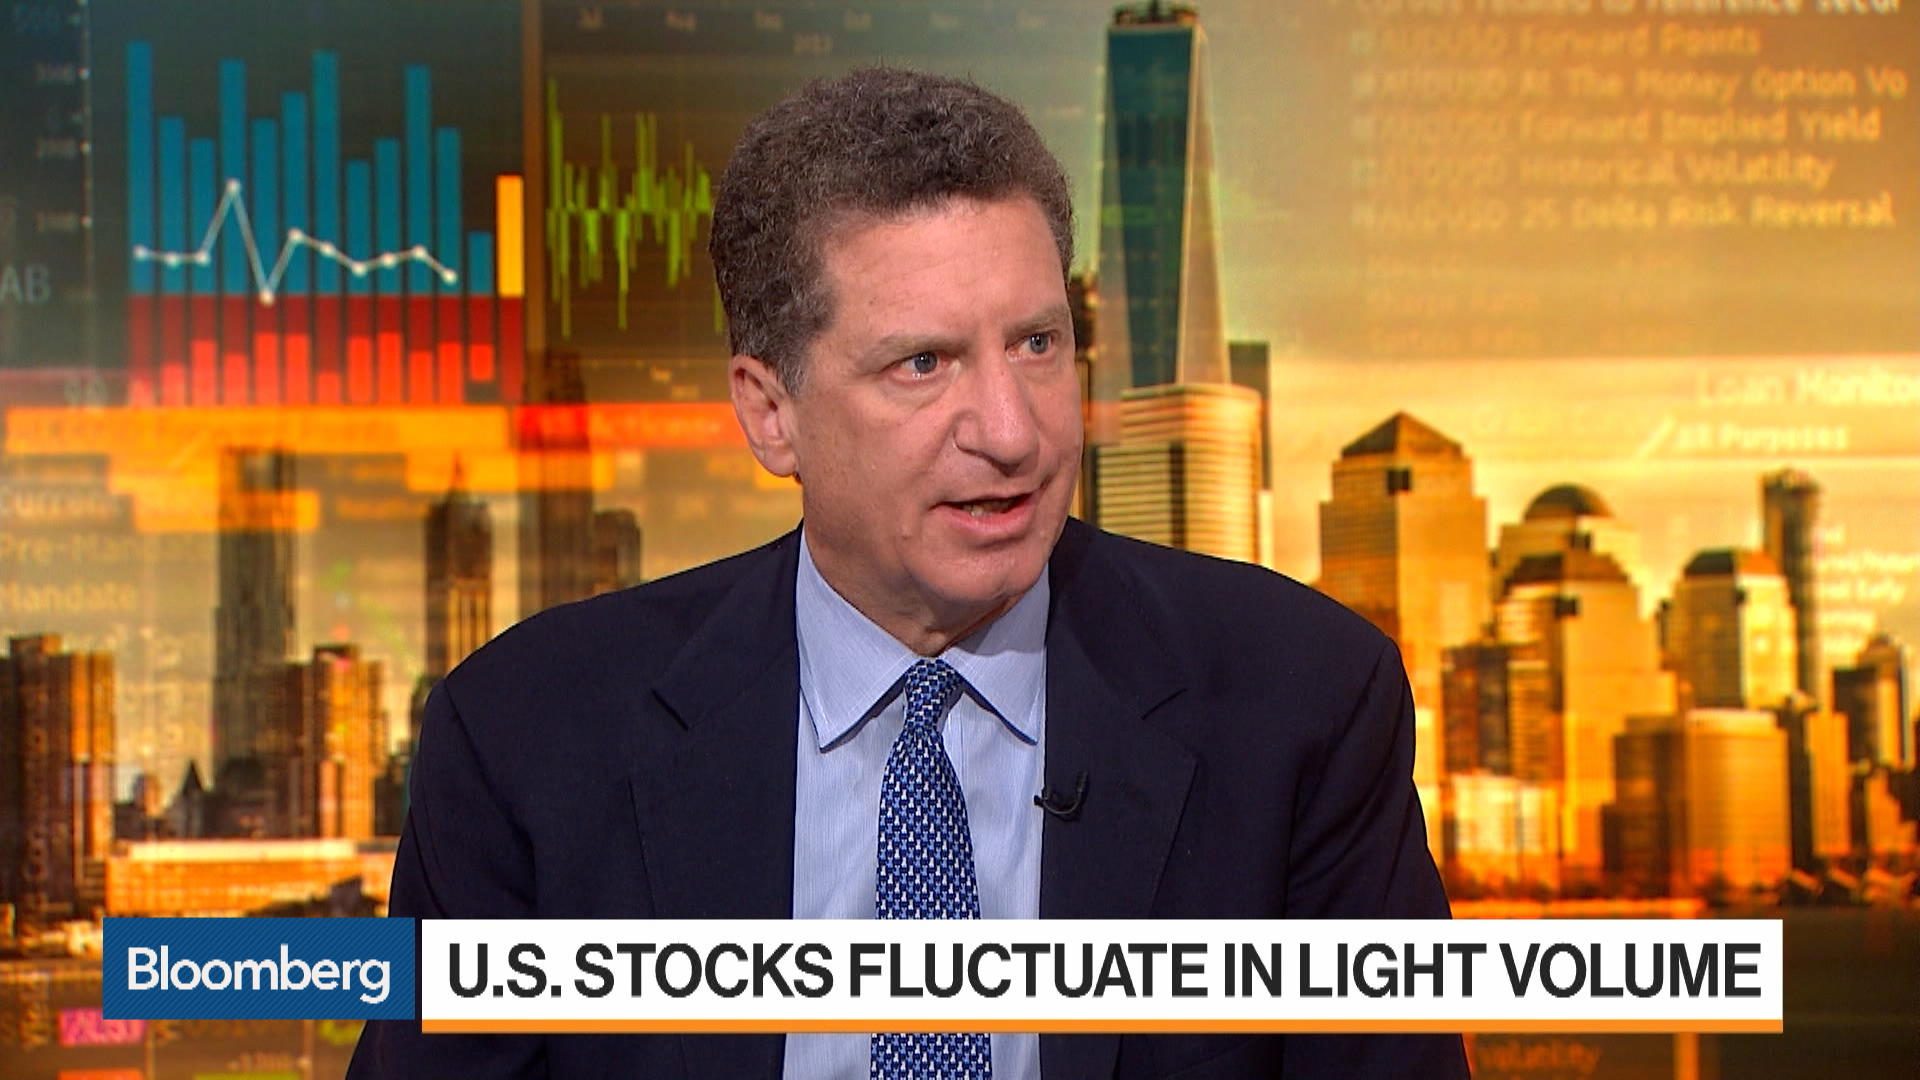 S&P 500 May Rally 5%-7% Over Next 9 Months, Citi's Bailin Says